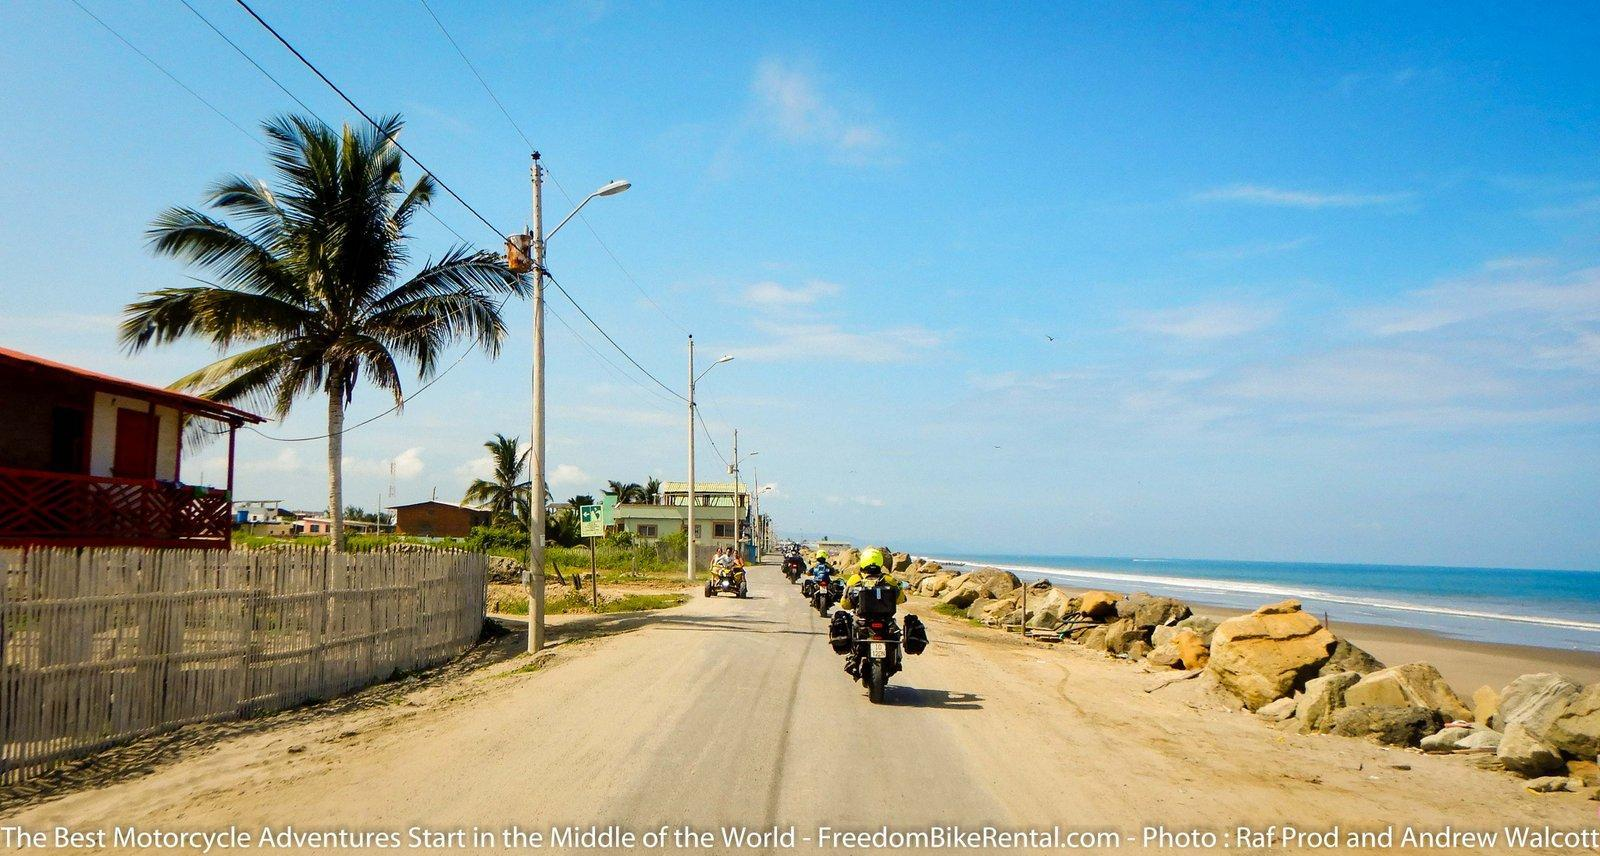 Riding adventure motorcycles on the pacific coast of Ecuador